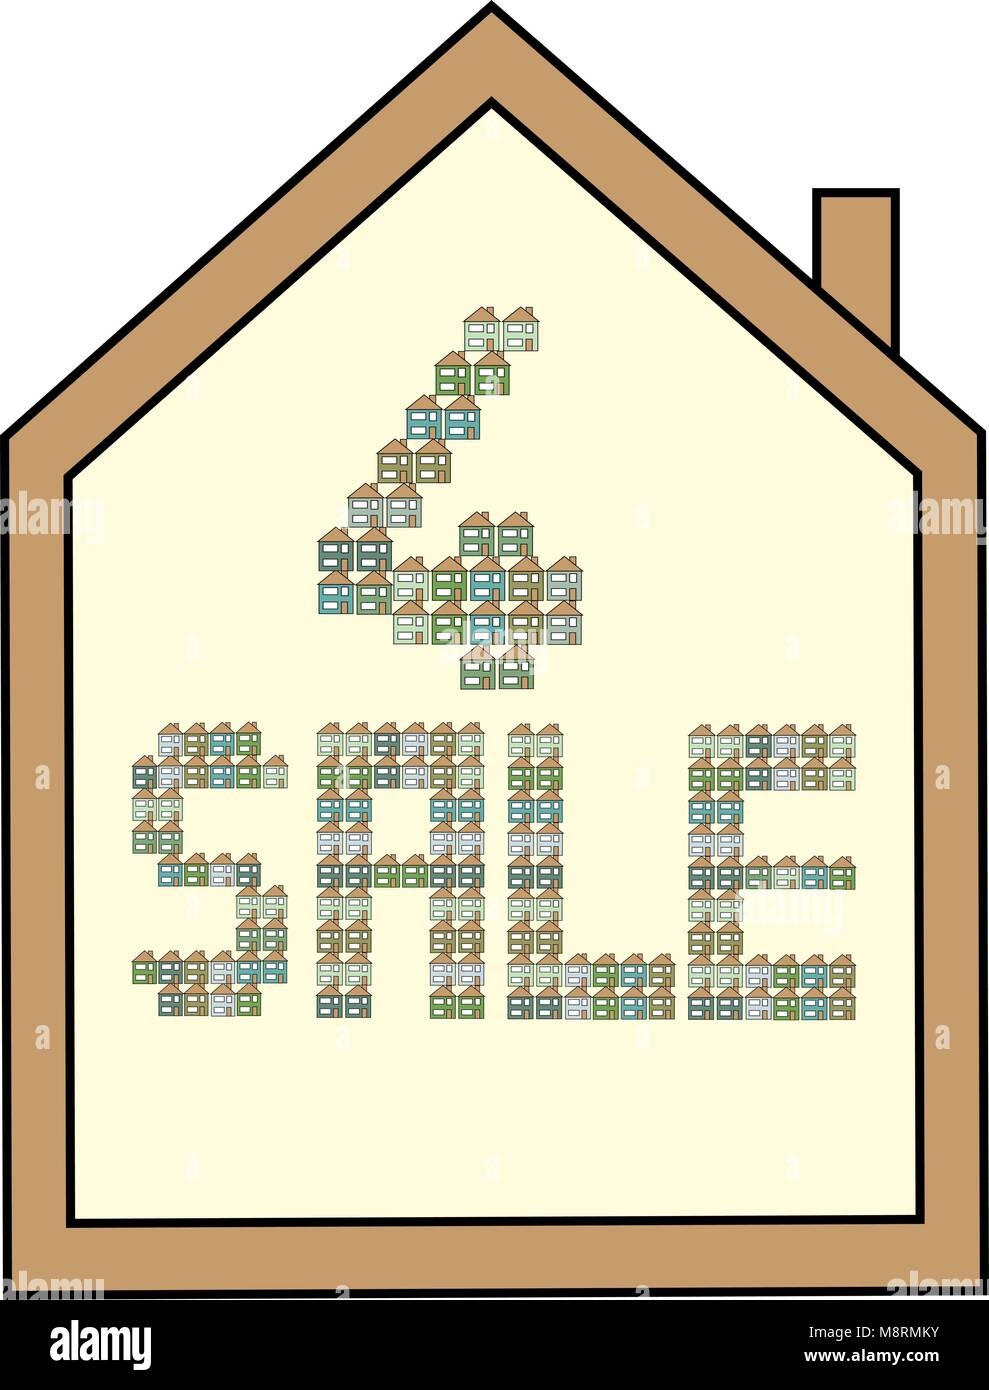 House shaped white for sale board with brown edging and letters made from green, blue and aqua mini houses. - Stock Vector